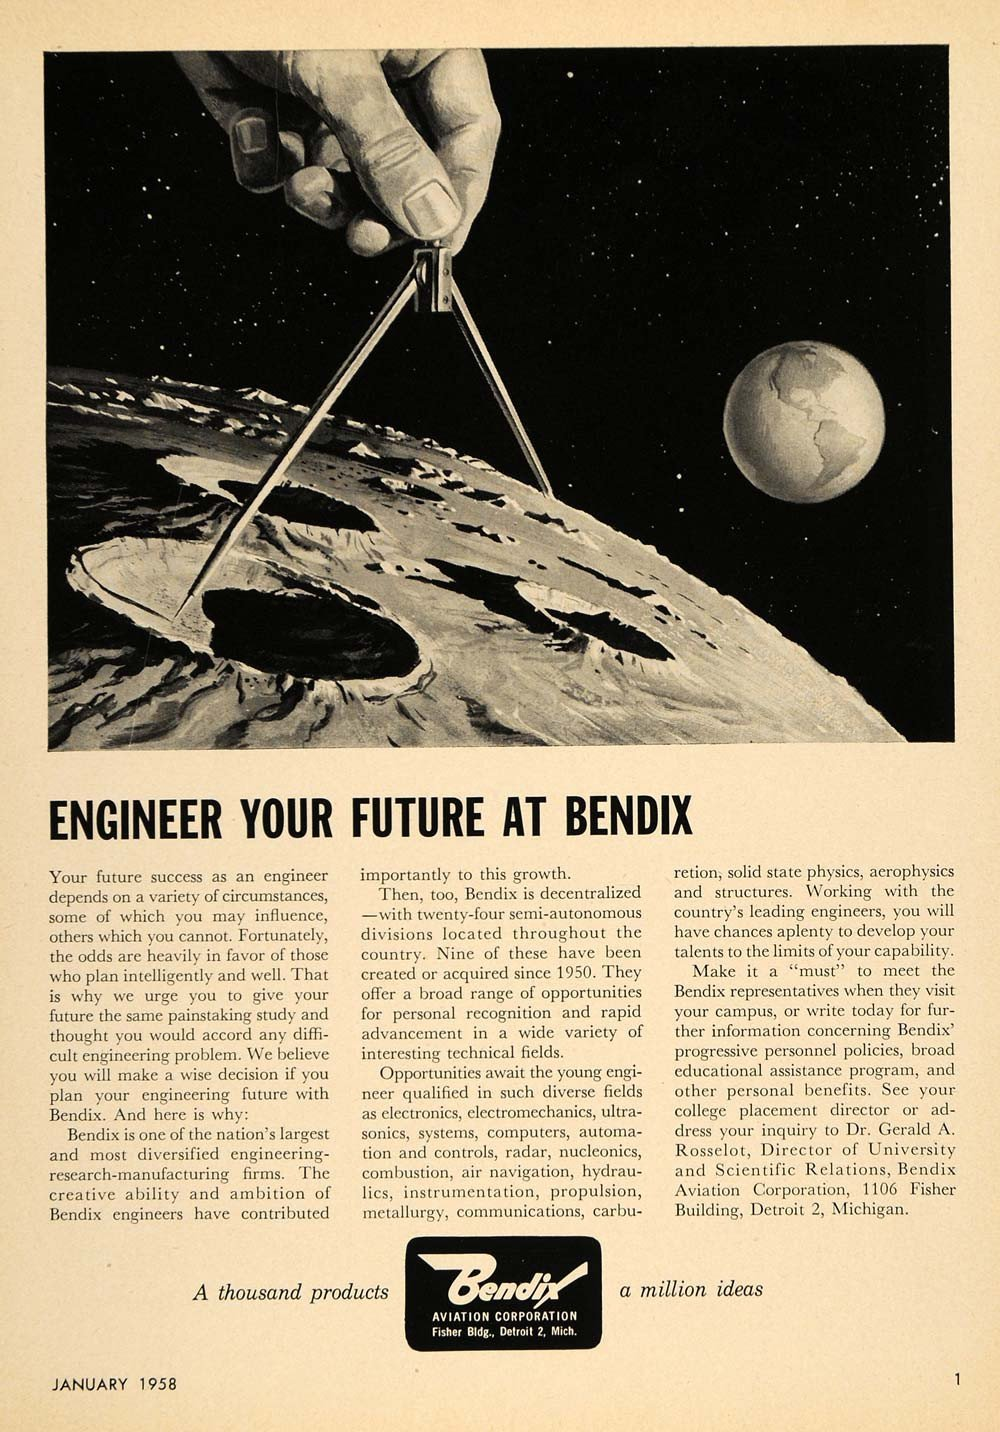 A thousand products, a million ideas. - Bendix took pride in inventing and/or manufacturing a diverse line of products. Ads, like the one on the left, frequently used the